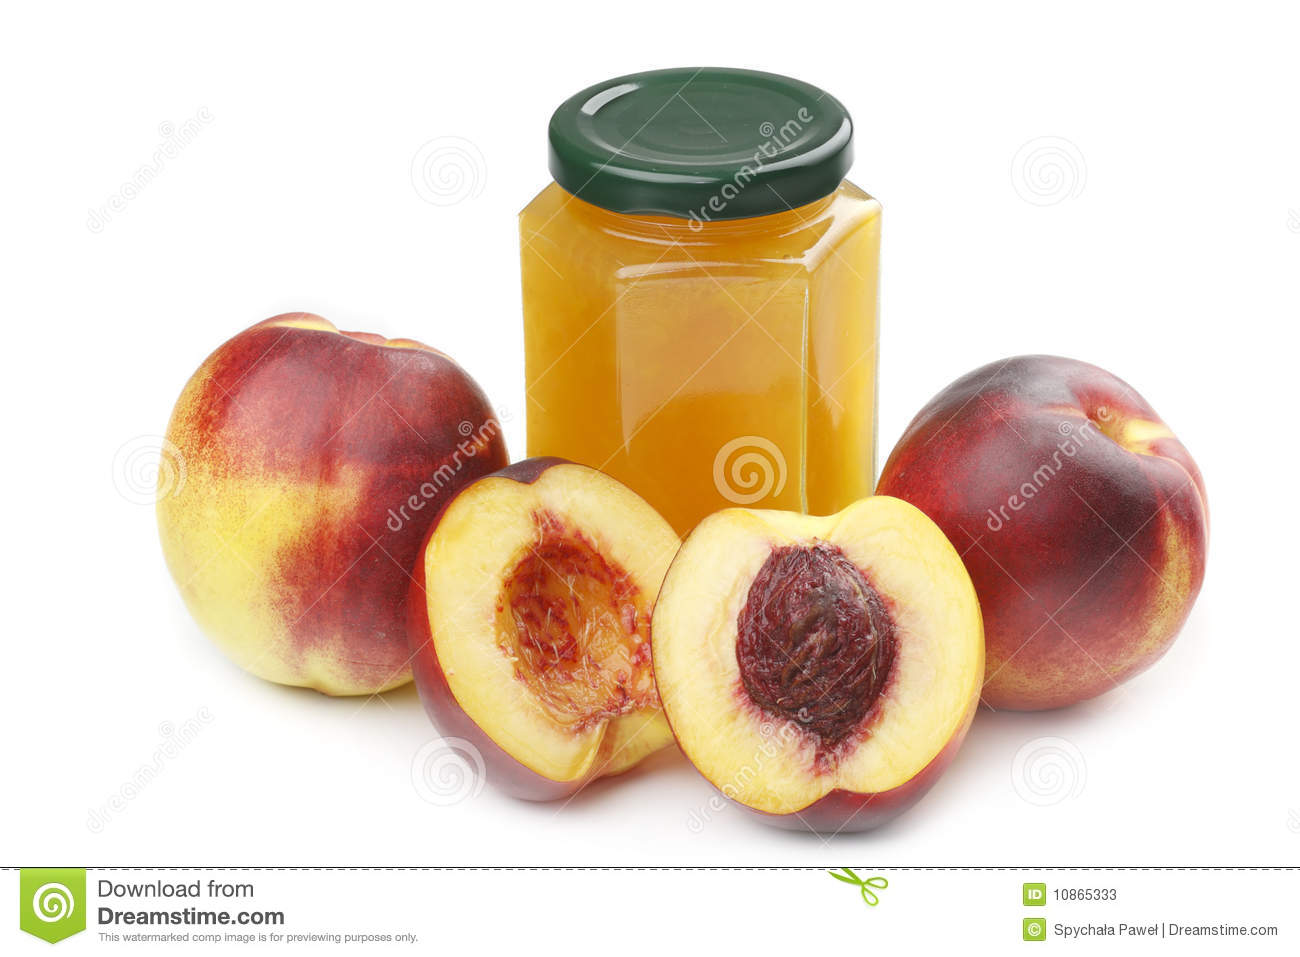 Nectarine and jam isolated on a white background.